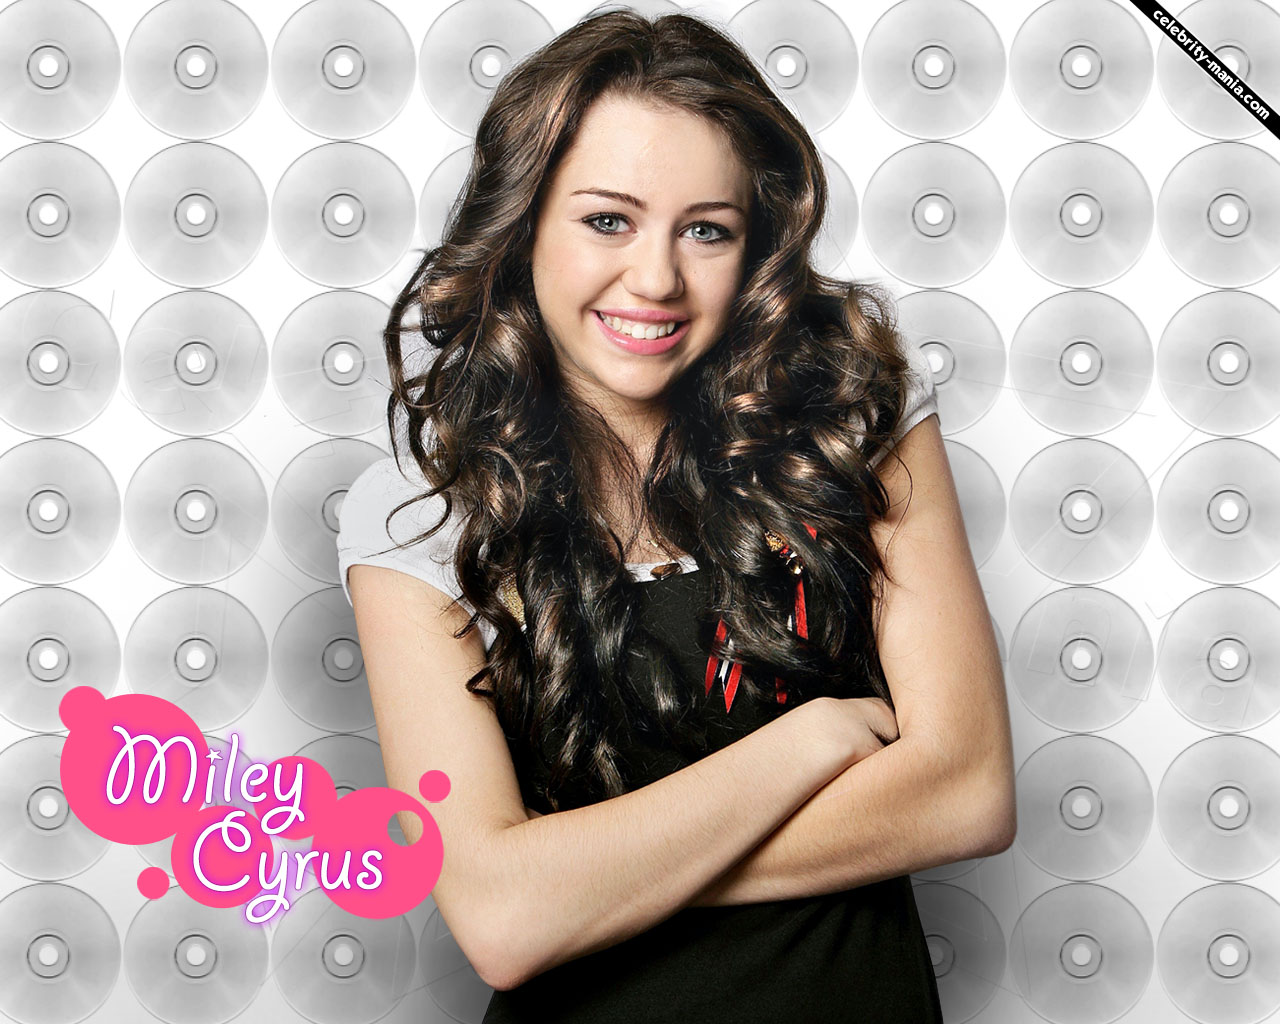 mileys   Miley Cyrus Wallpaper 23526942 1280x1024